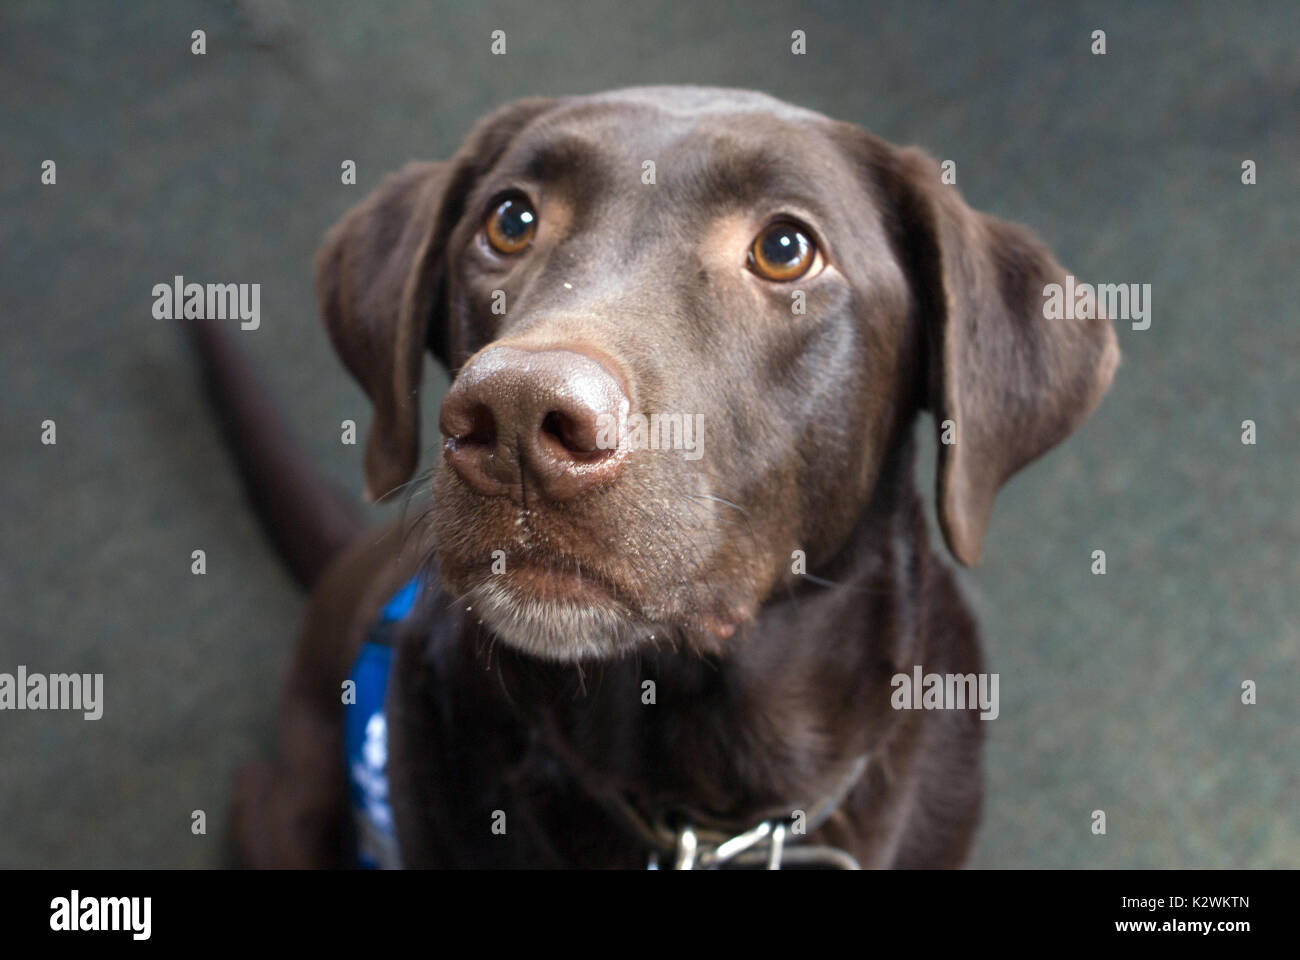 Working Dog Service Vest Stock Photo